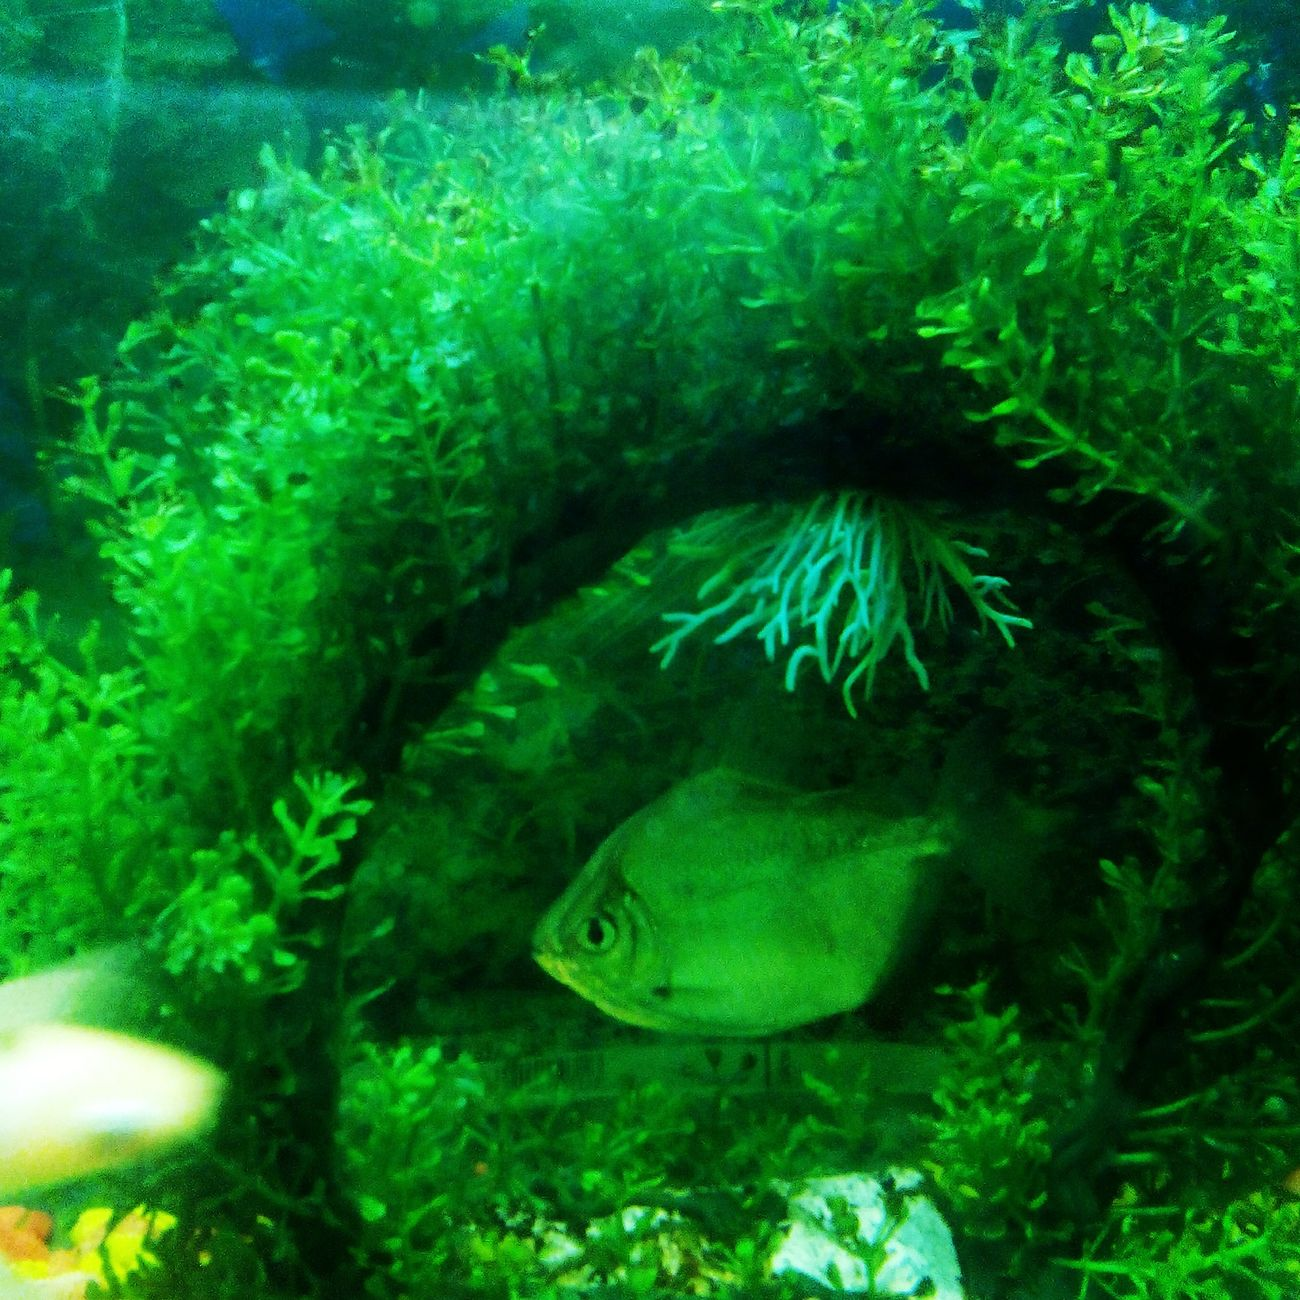 Aquarium Fish under Aquatic Plants Naturally Framed Timely clicked